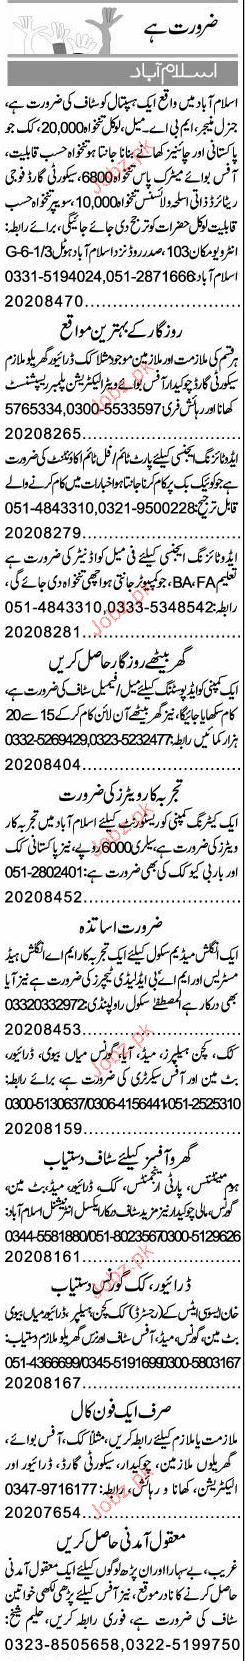 Drivers, Cook, Waiters, Plumber, Receptionist Required